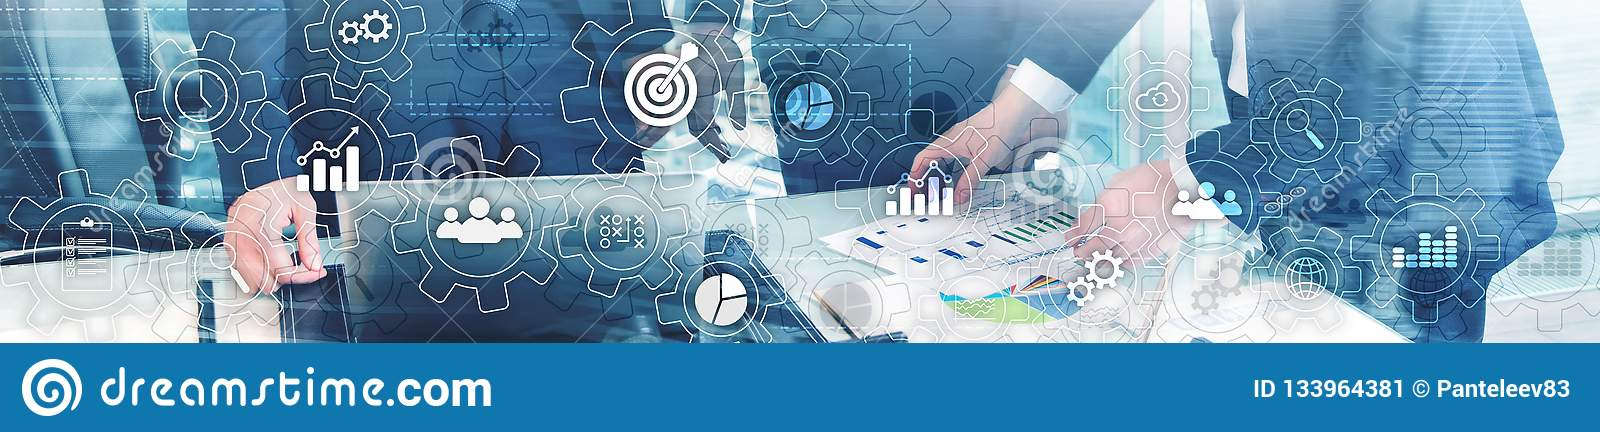 Business process abstract diagram with gears and icons. Workflow and automation technology concept. Website header